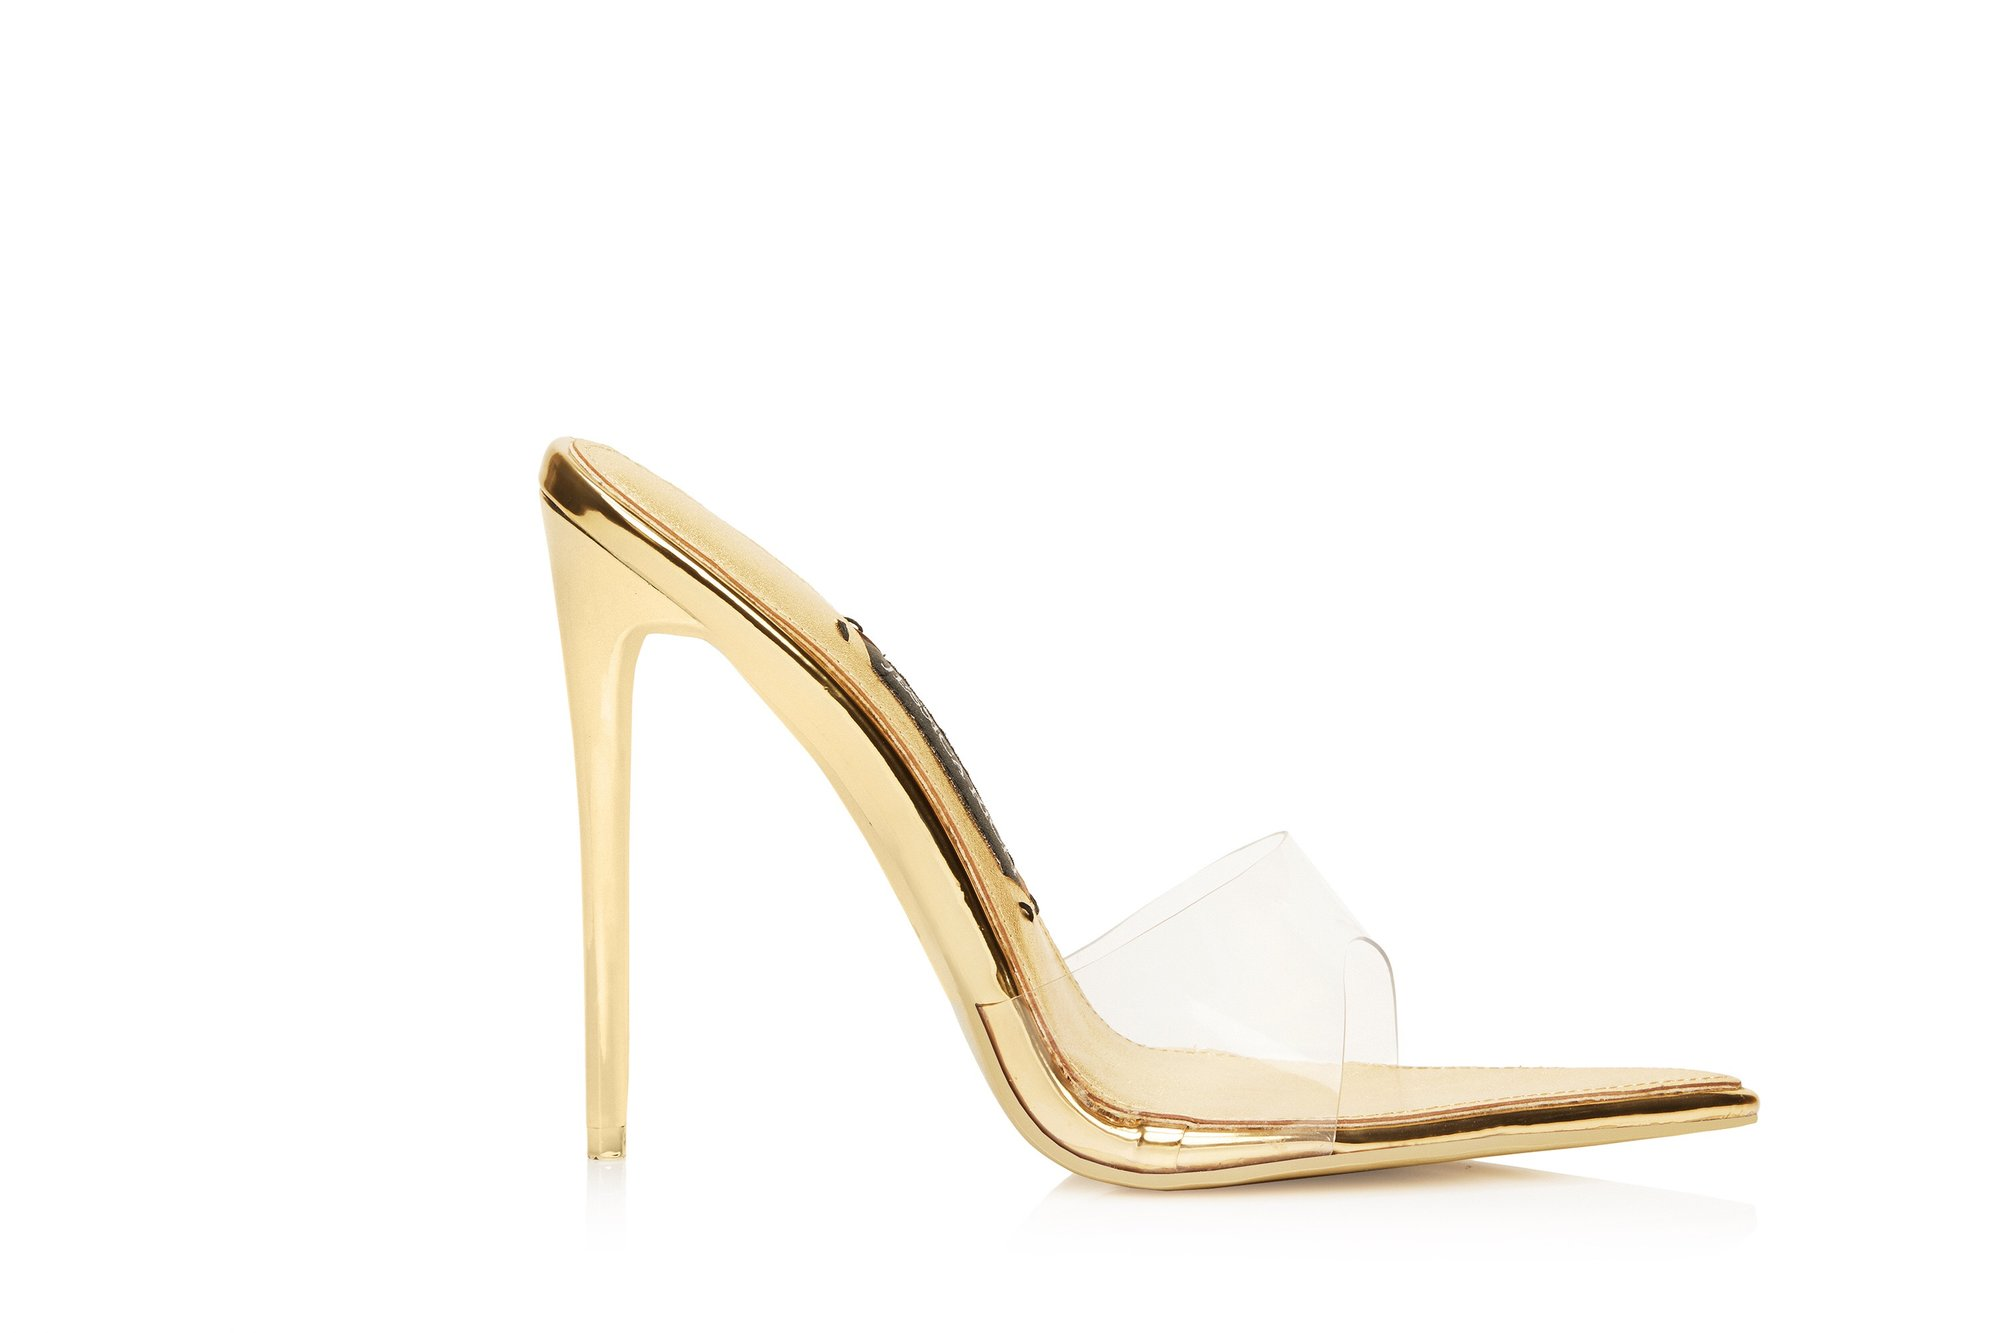 RACY MULE GOLD by JESSICA RICH, available on jessicarich.com for $215 Kylie Jenner Shoes Exact Product